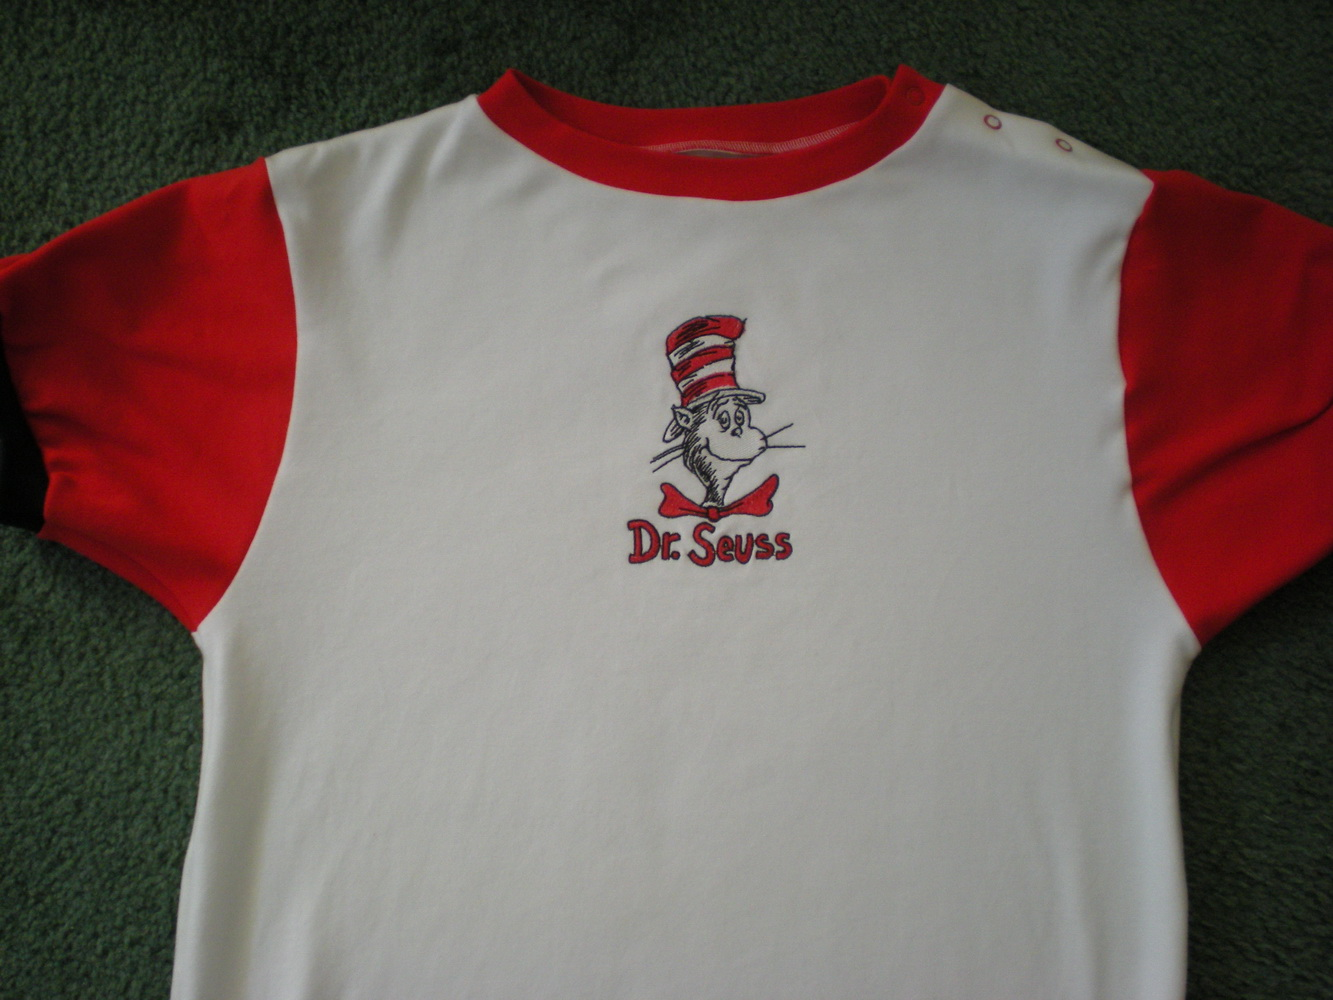 Dr Seuss cat in the hat design on t-shirt embroidered